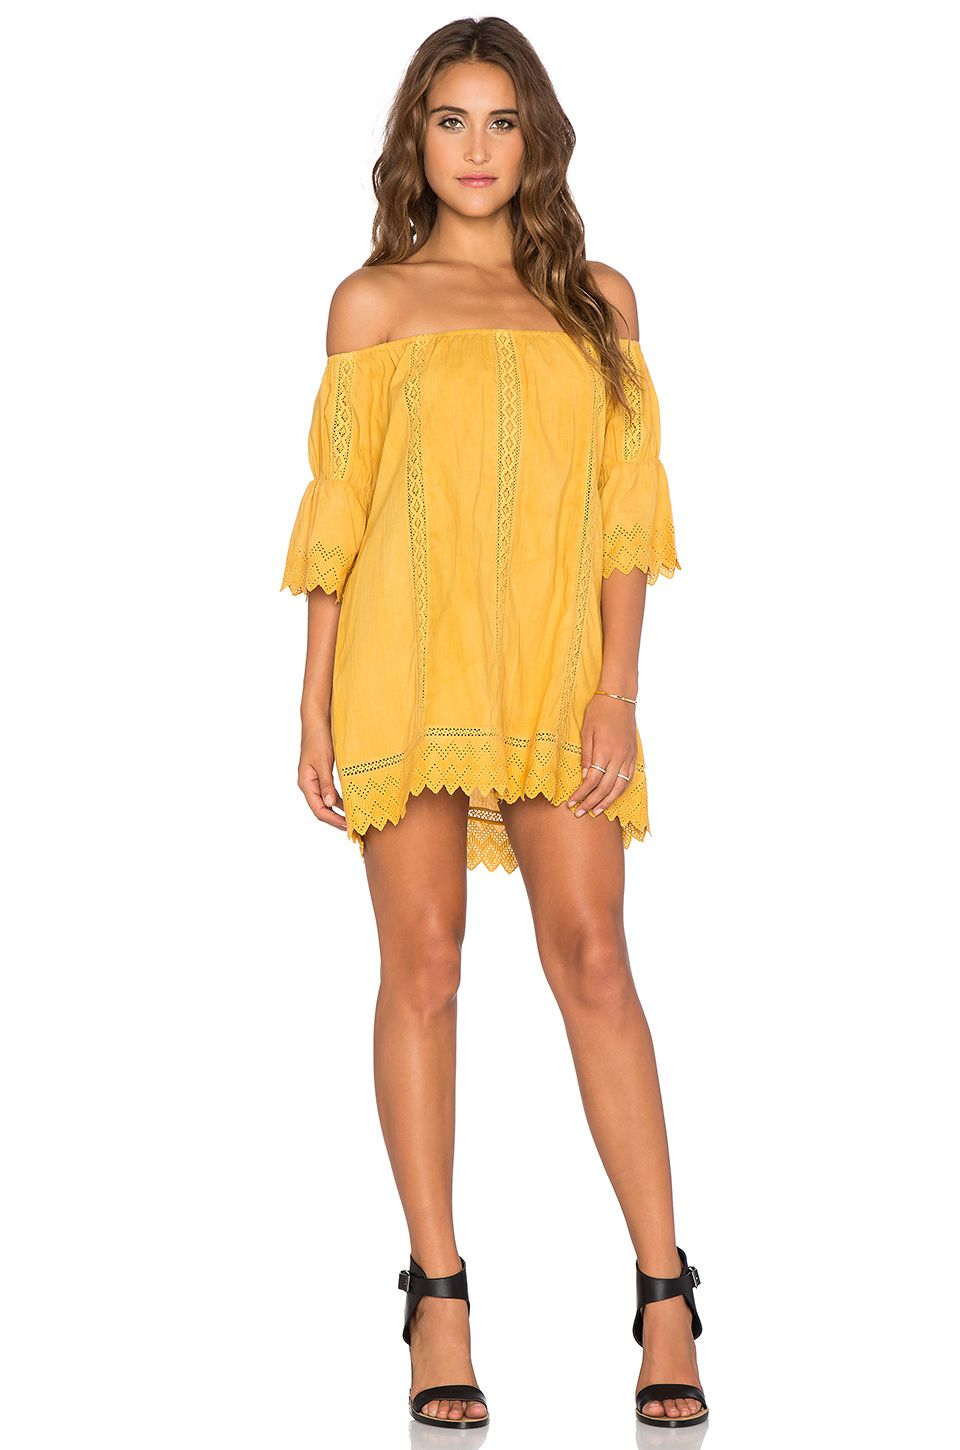 Tularosa isabella dress in marigold revolve what to wear